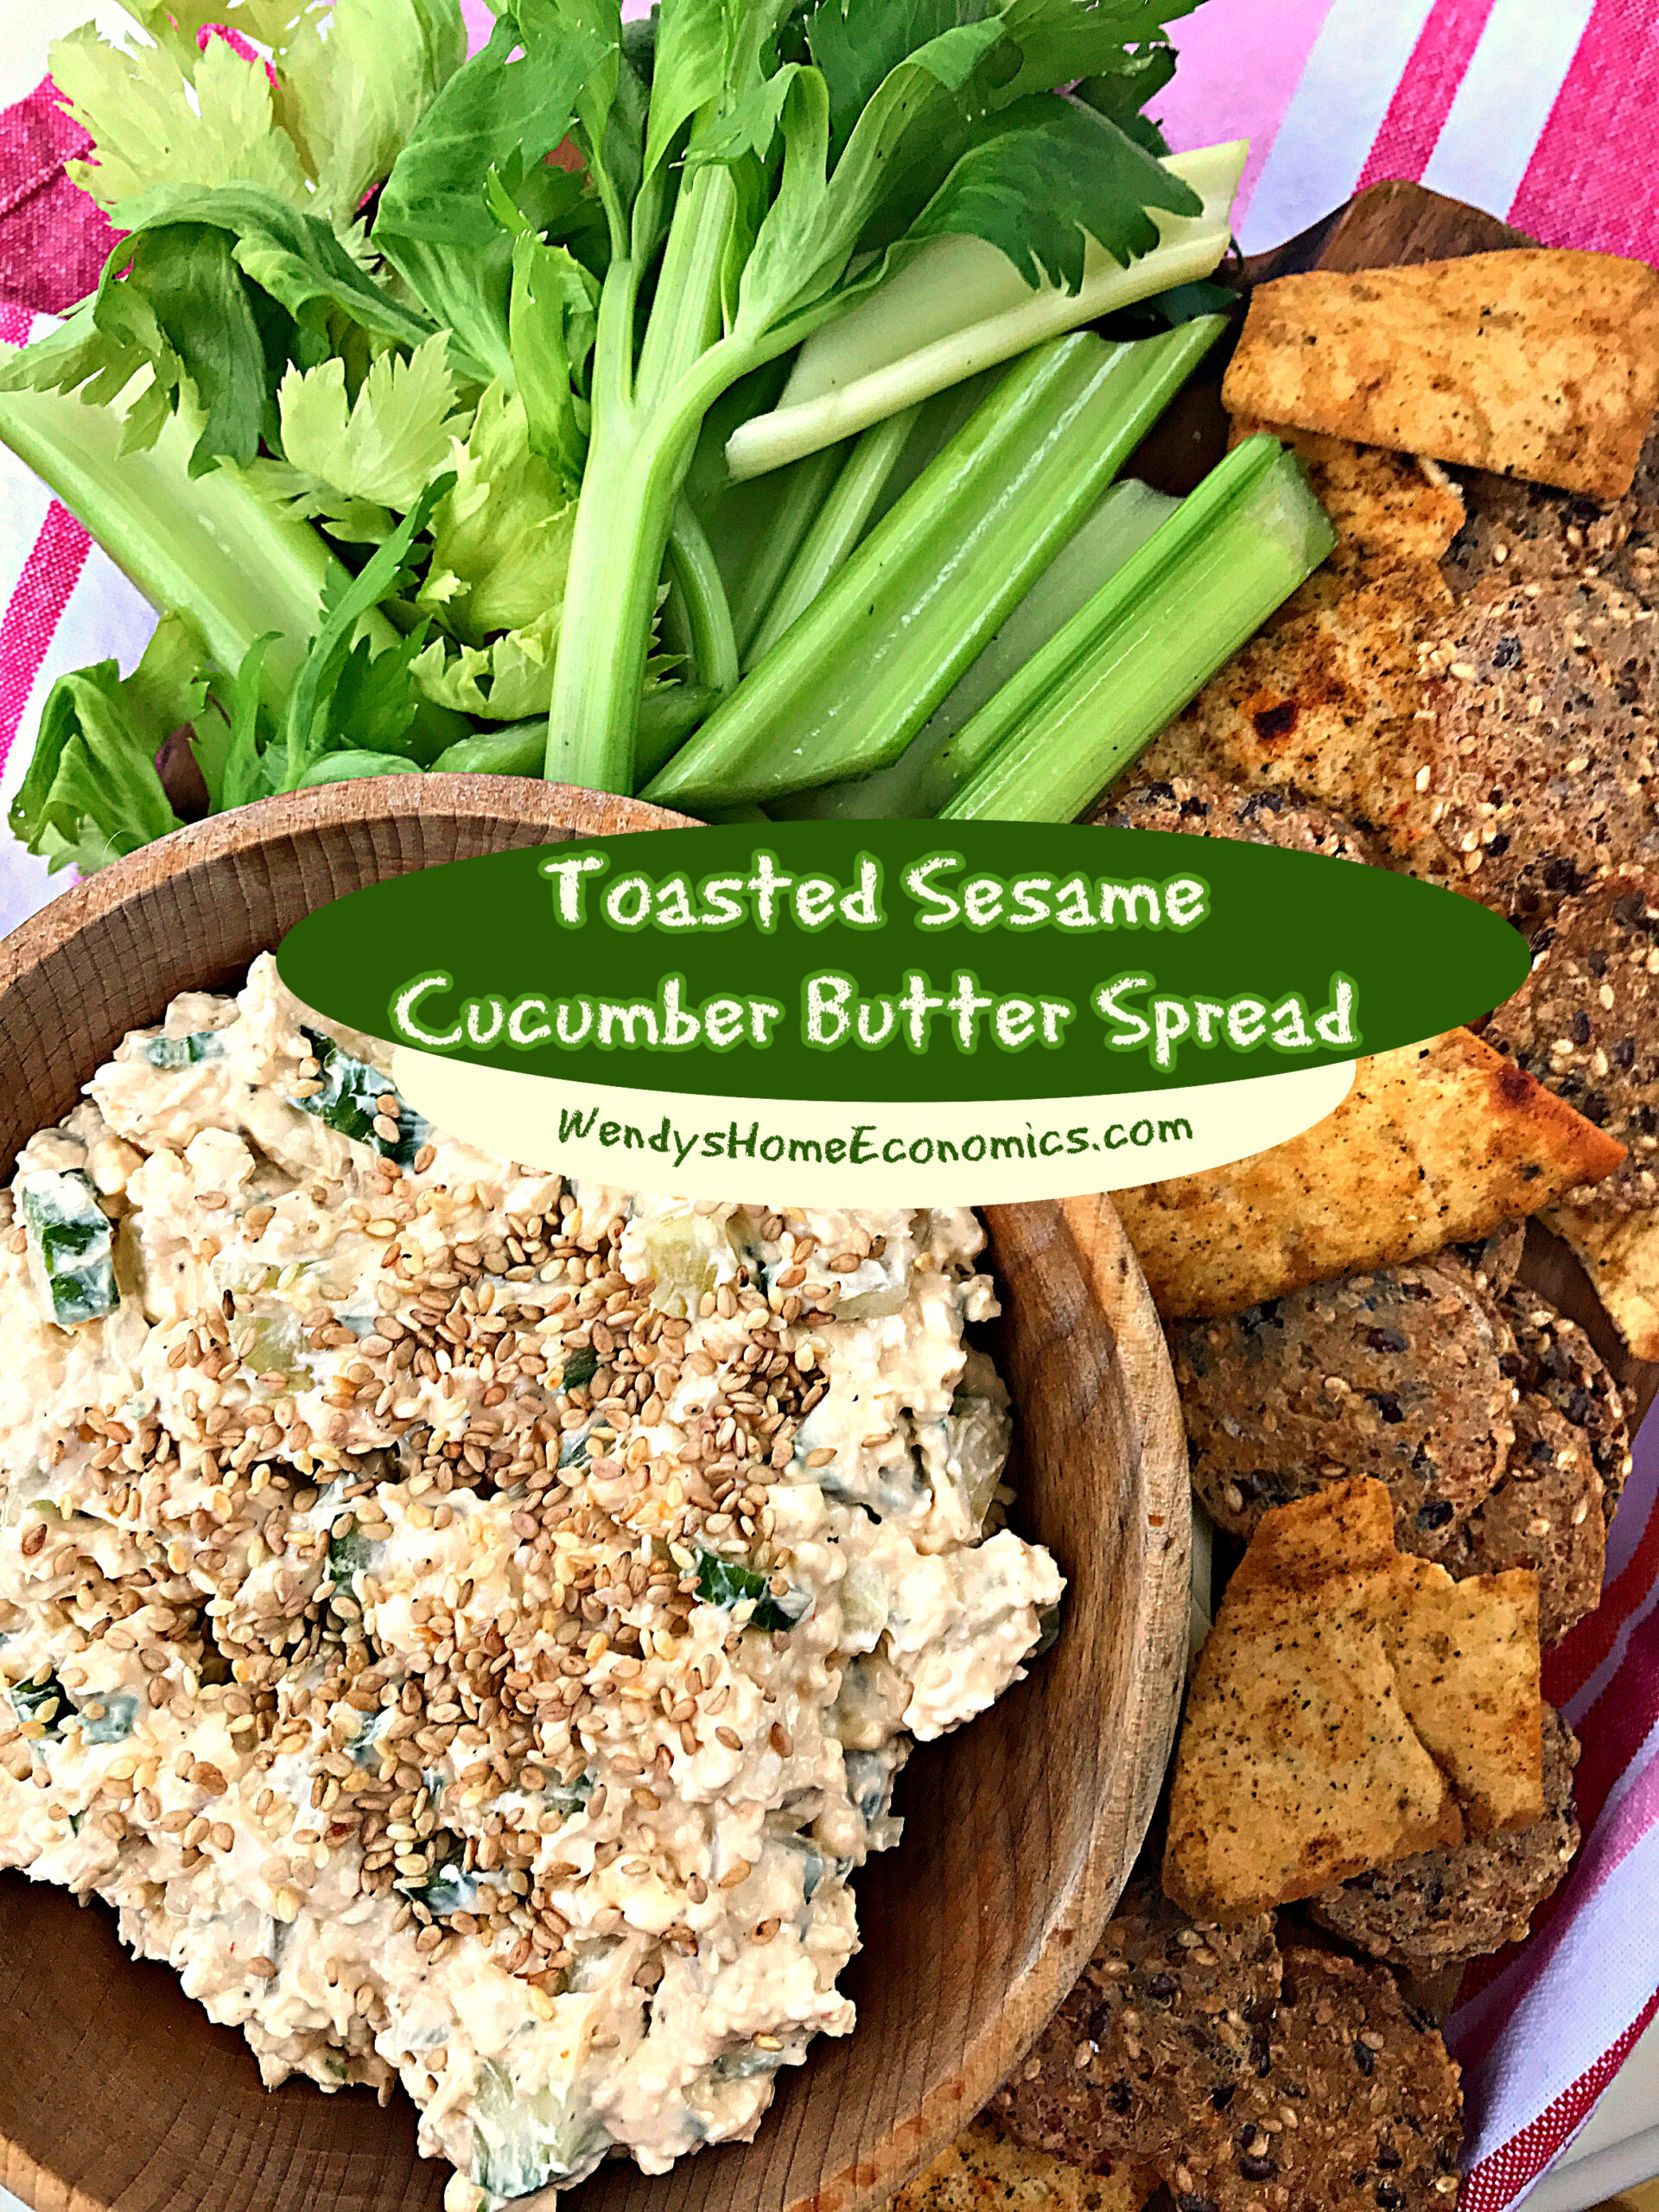 Toasted Sesame Cucumber Butter Spread